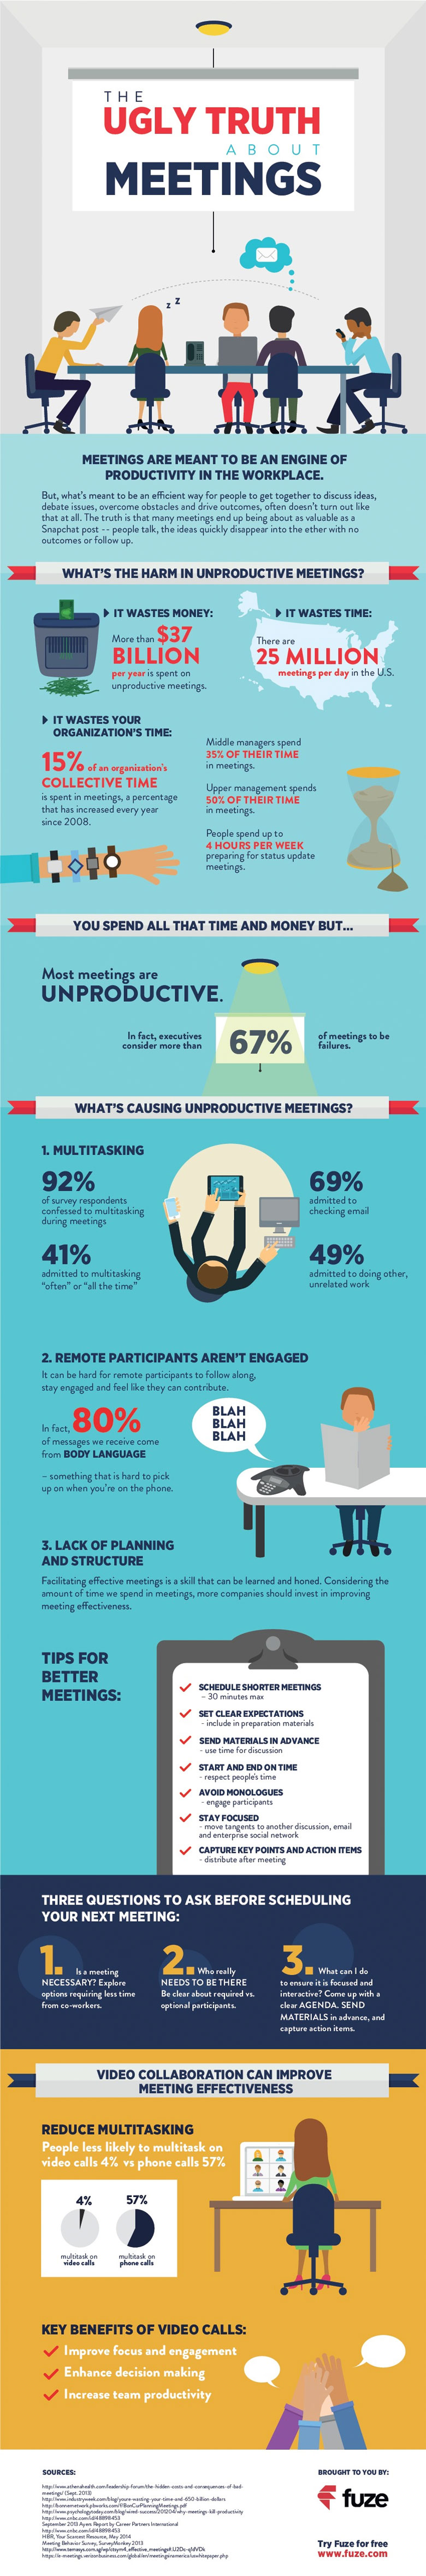 meetings-are-a-waste-of-time-infographic